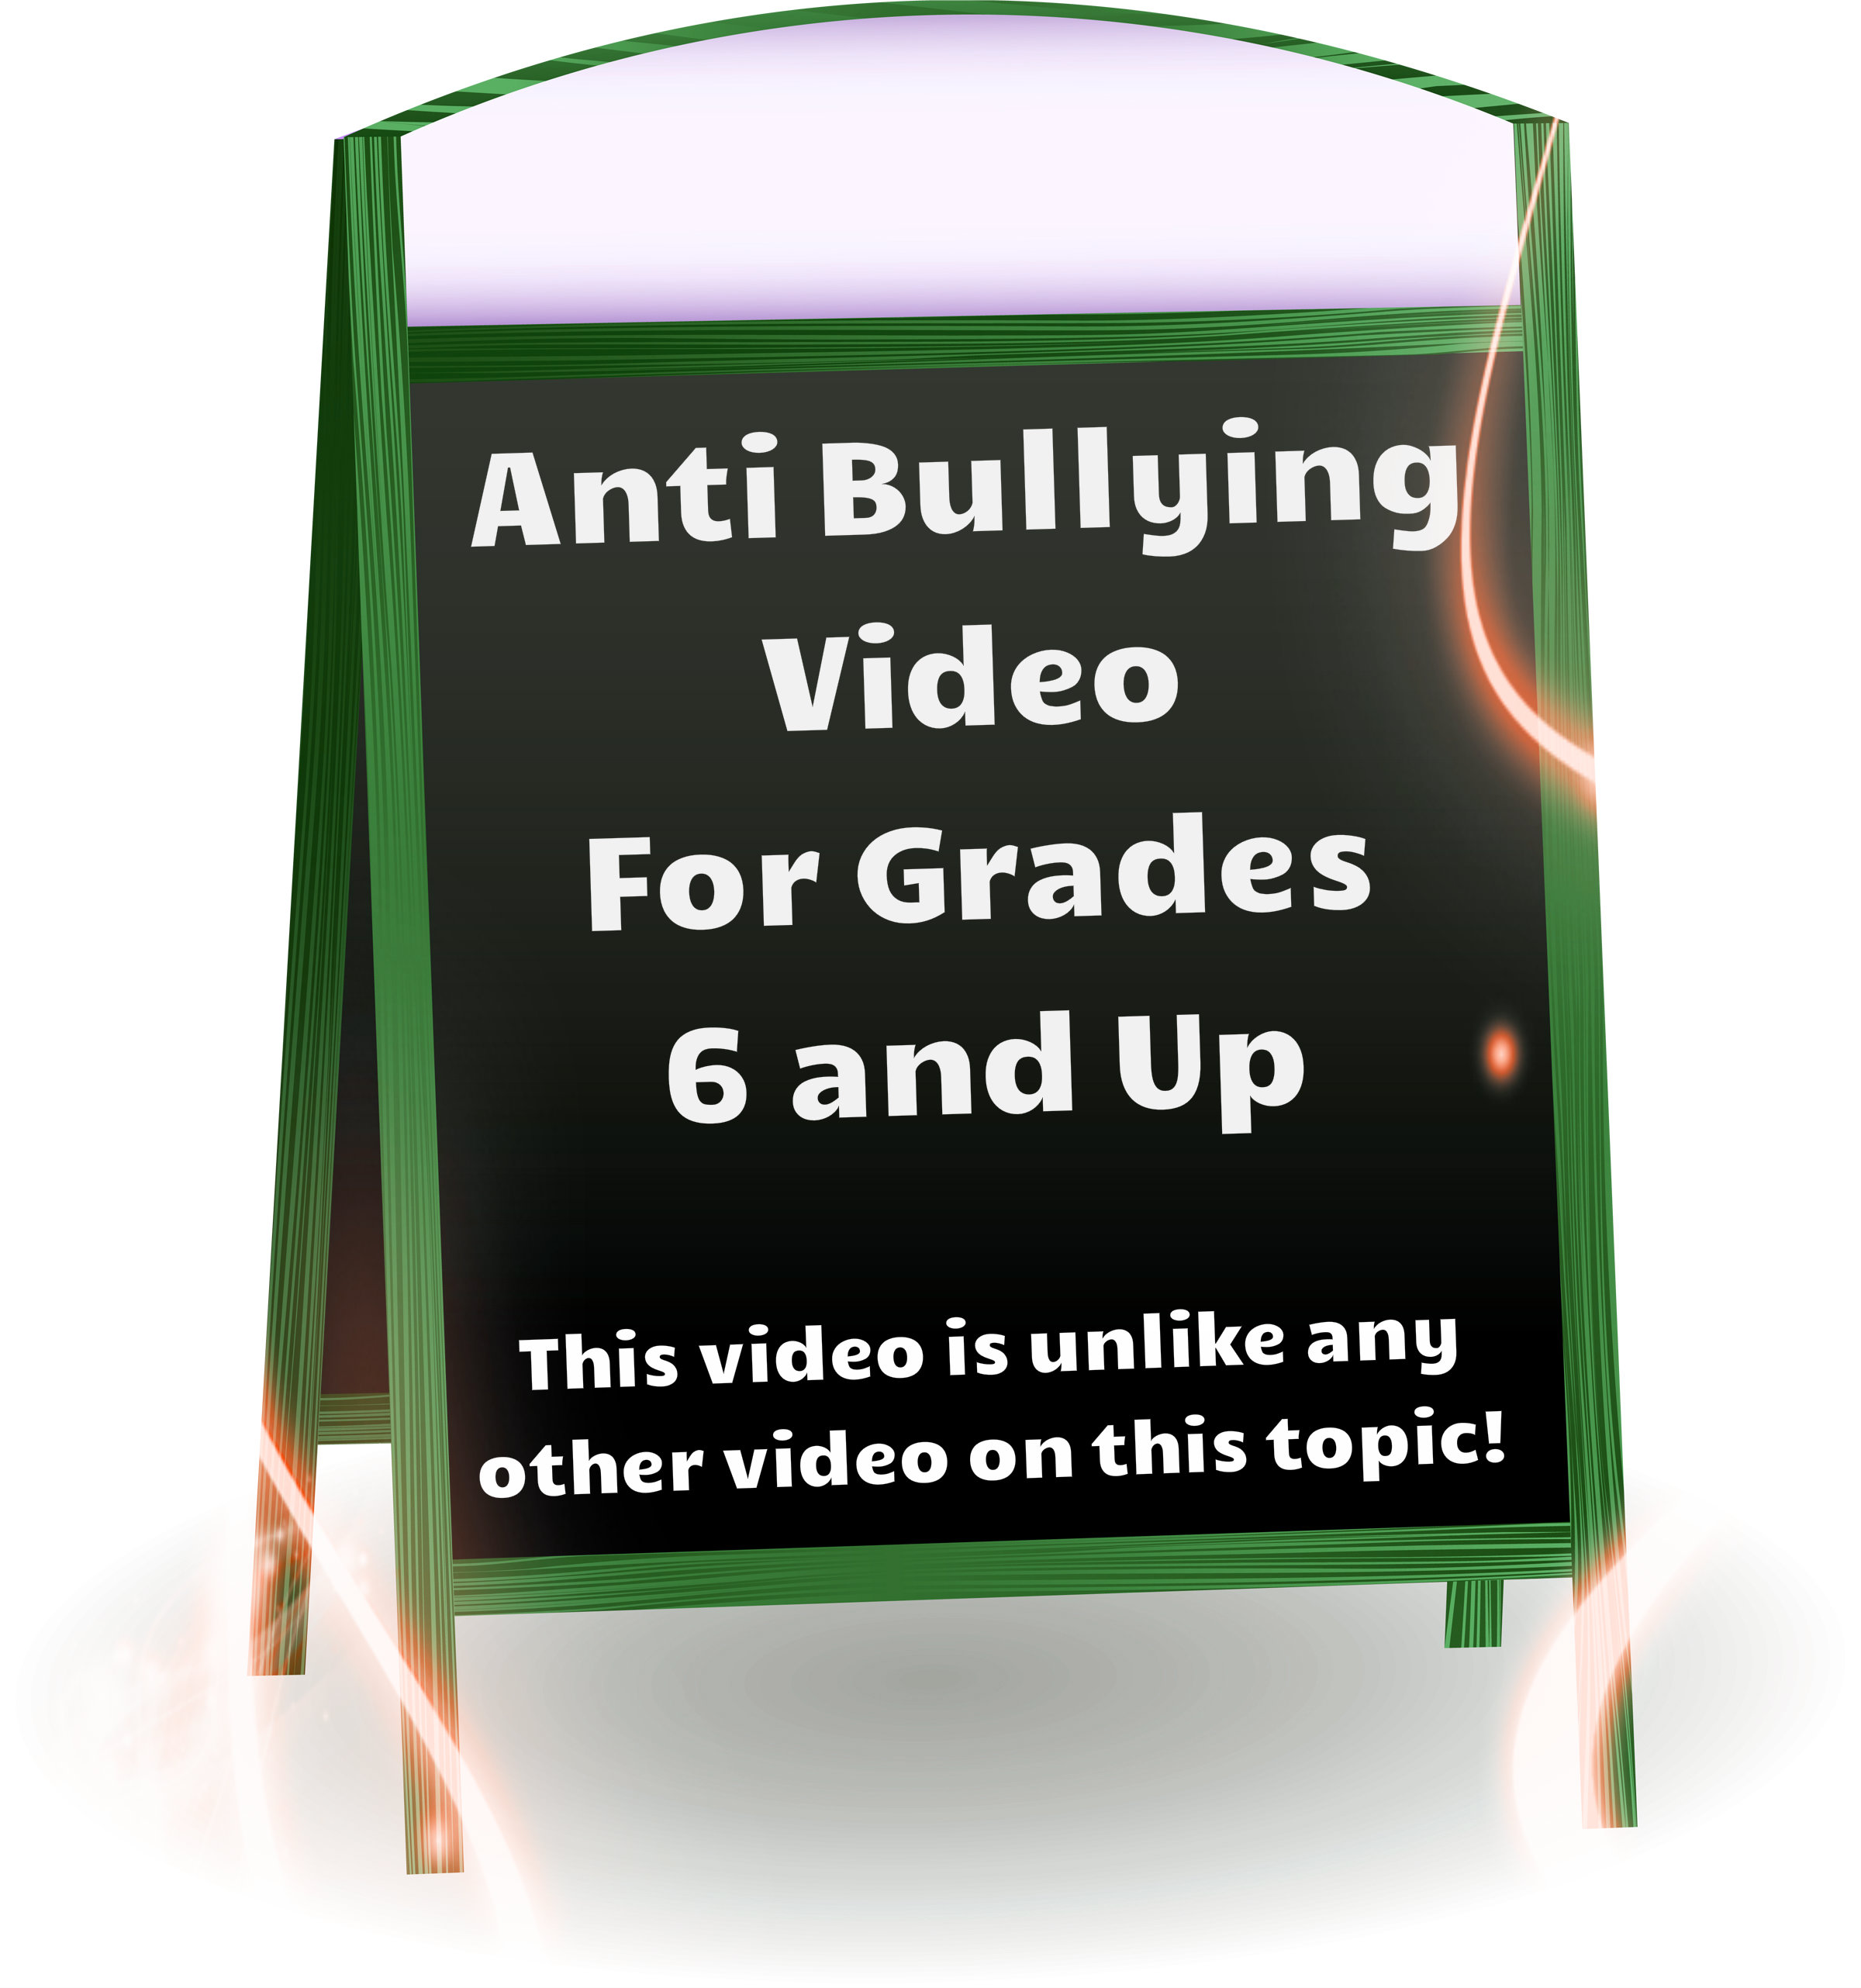 Anti Bullying Video Grades 6 and Up